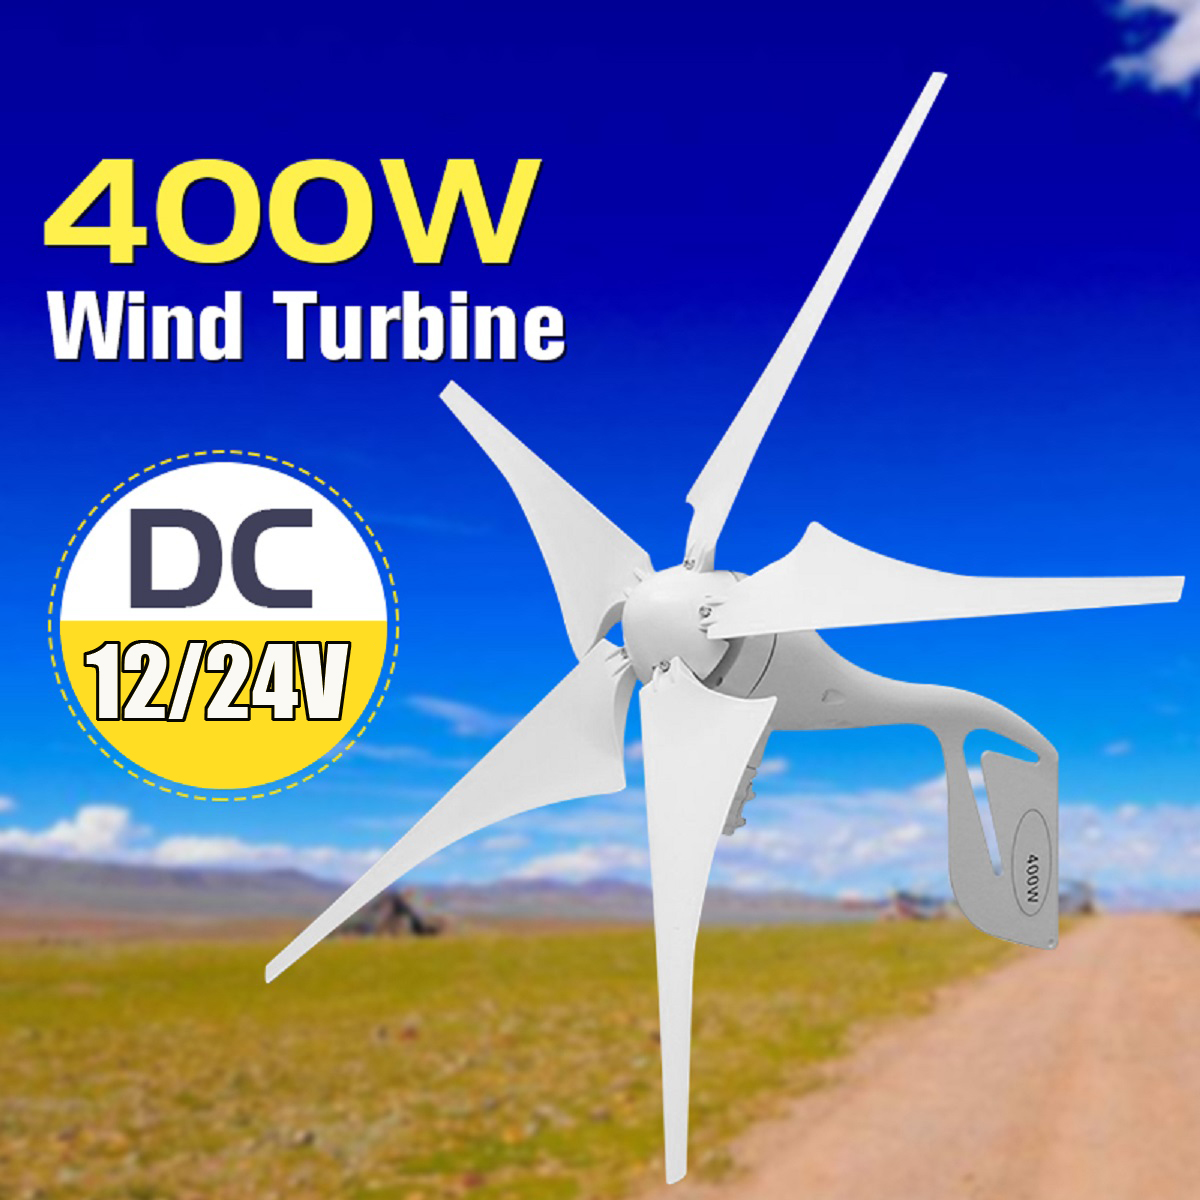 все цены на Wind Turbine 400W Wind Power Generator 5 Blades + DC 12V/24V Waterproof Charge Controller 300/600W Wind Energy Turbine Generator онлайн